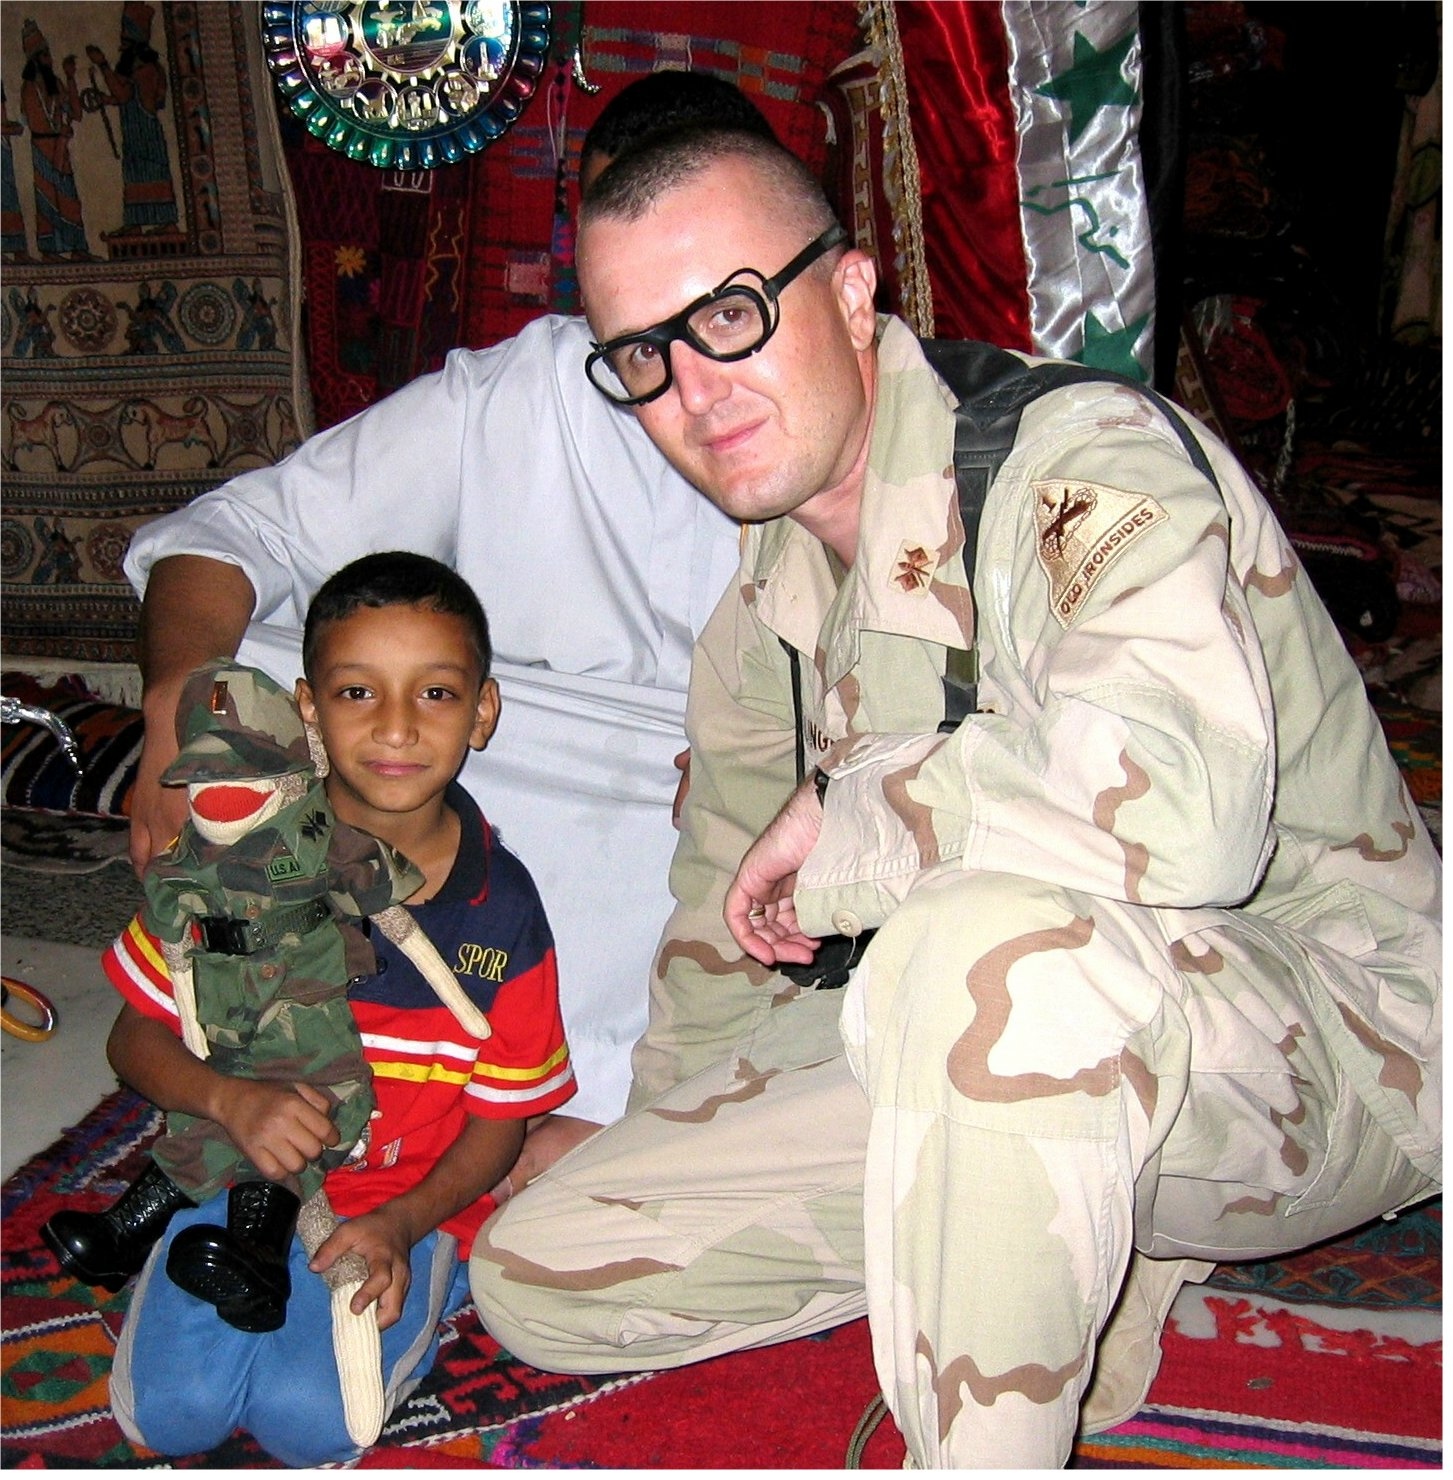 Brother-in-law Nathan serving valiantly in Iraq